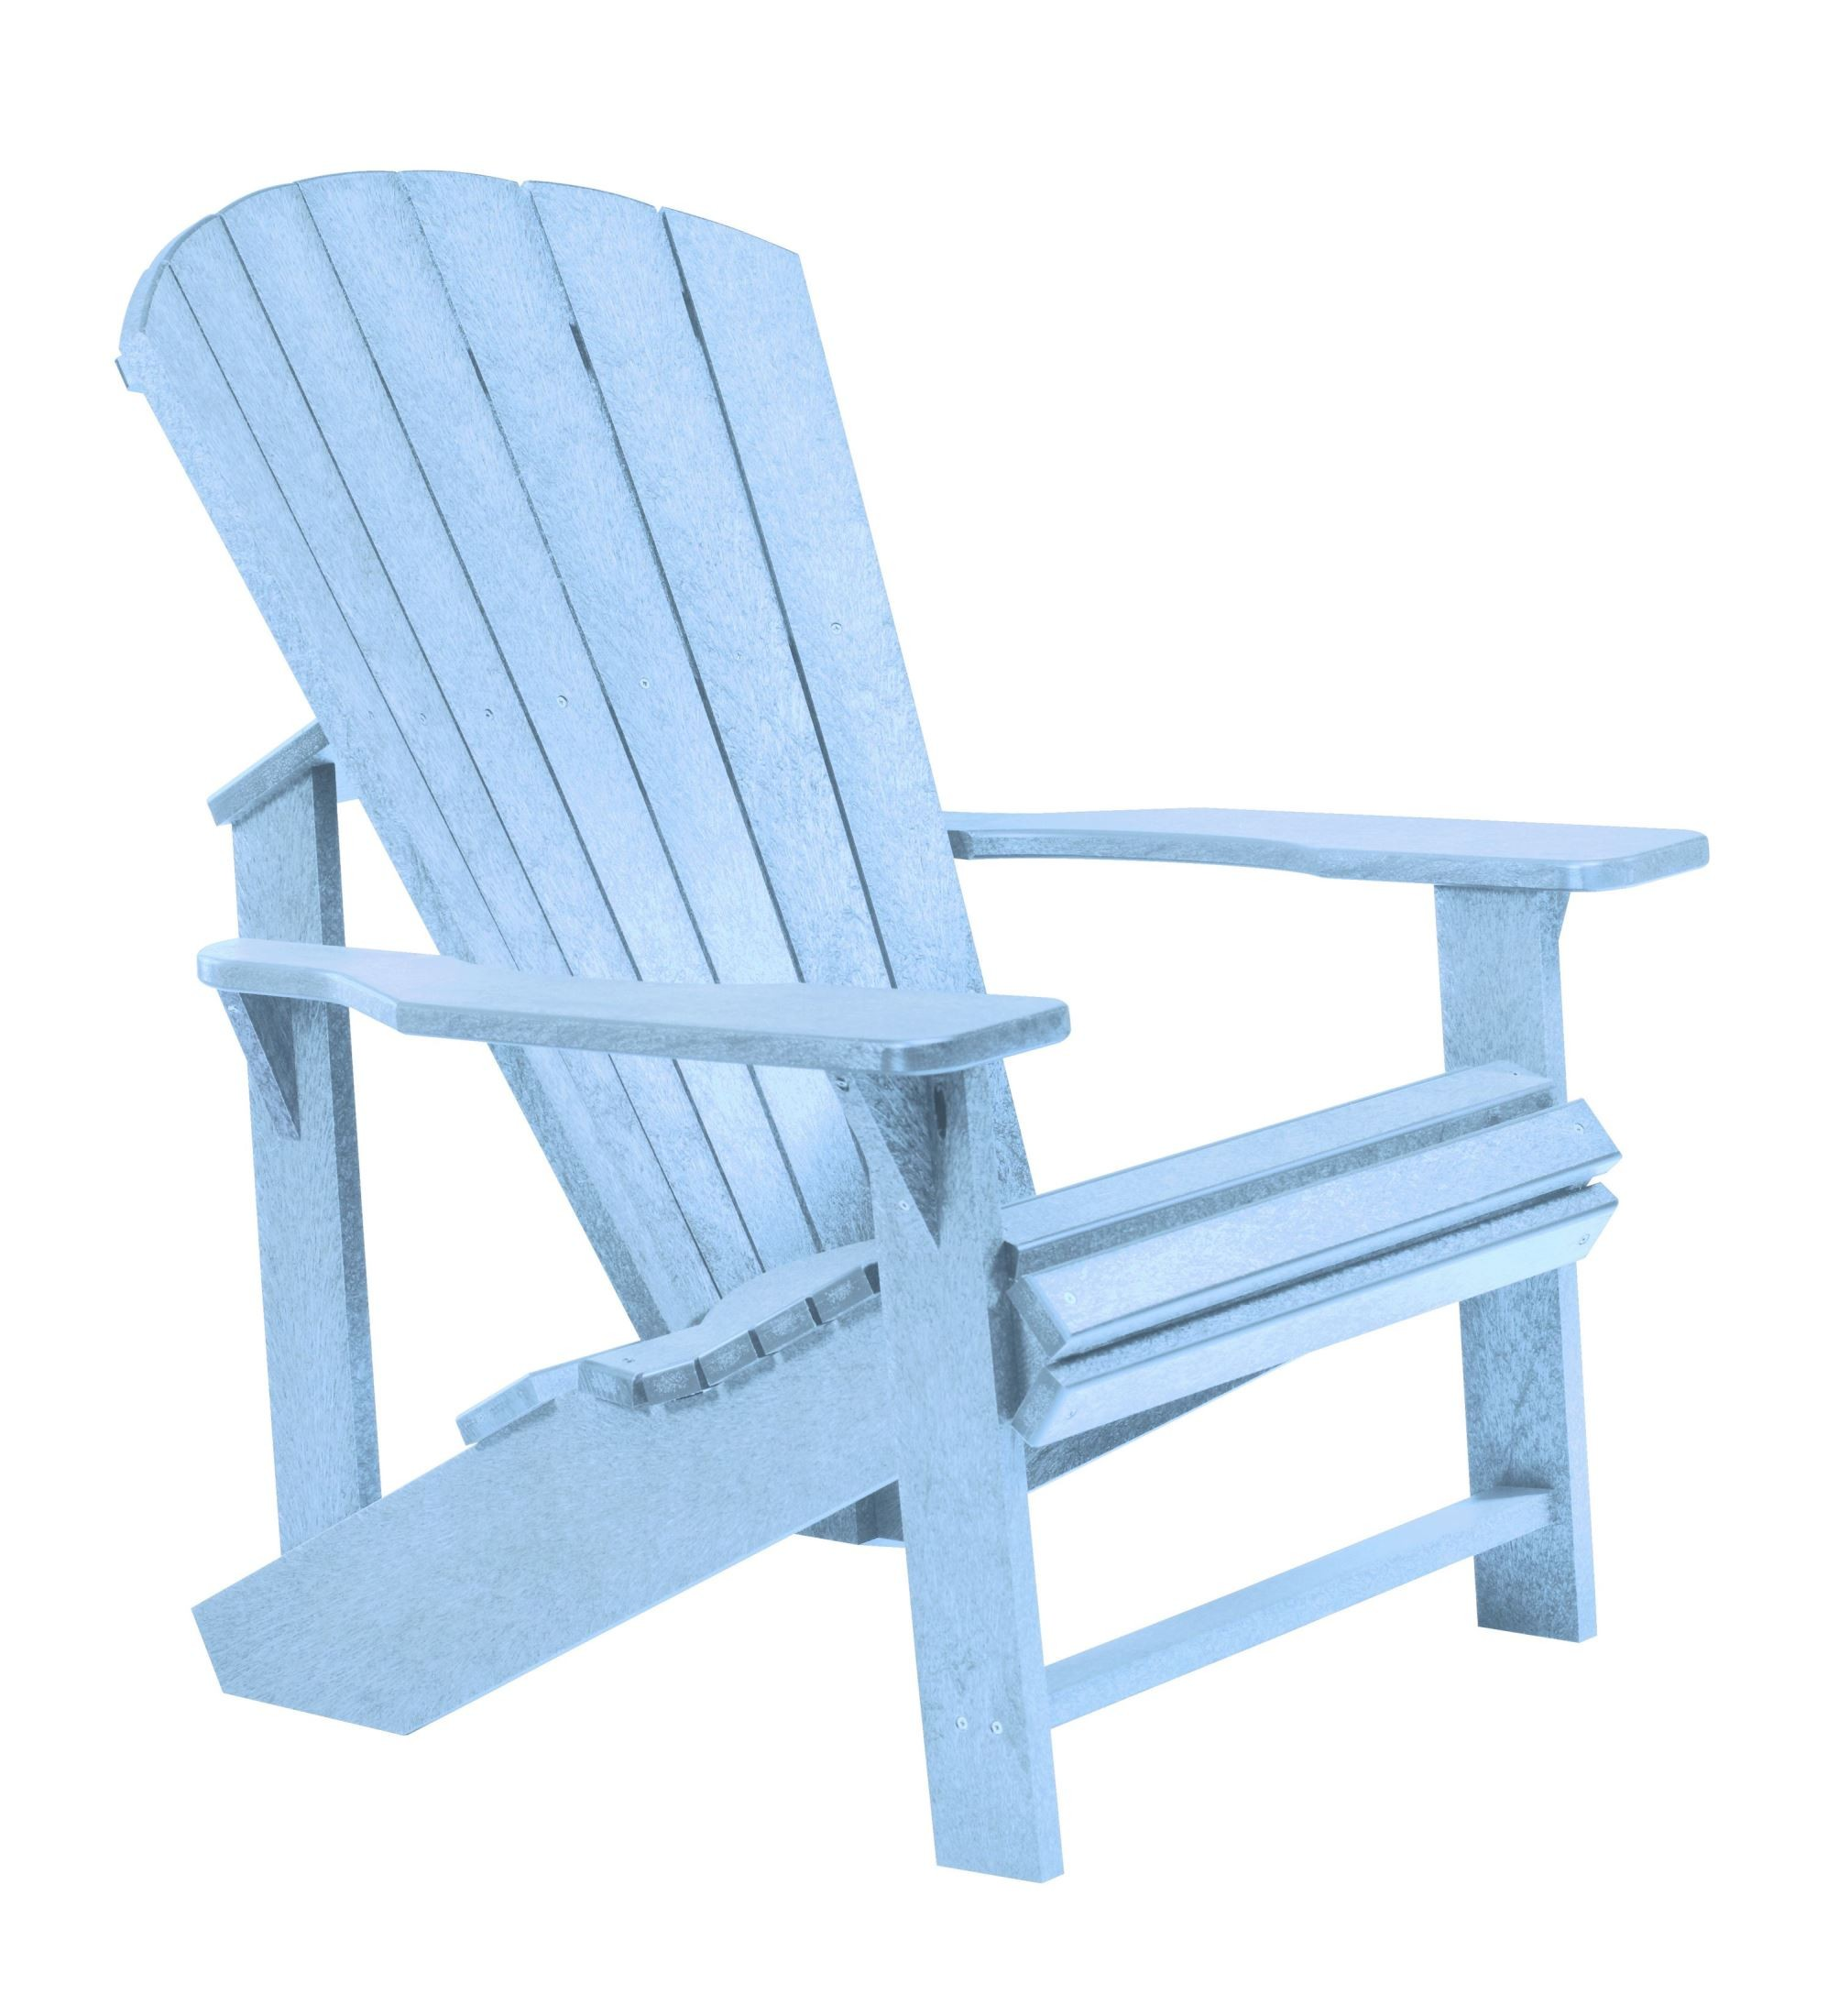 Generations Sky Blue Adirondack Chair From Cr Plastic C01